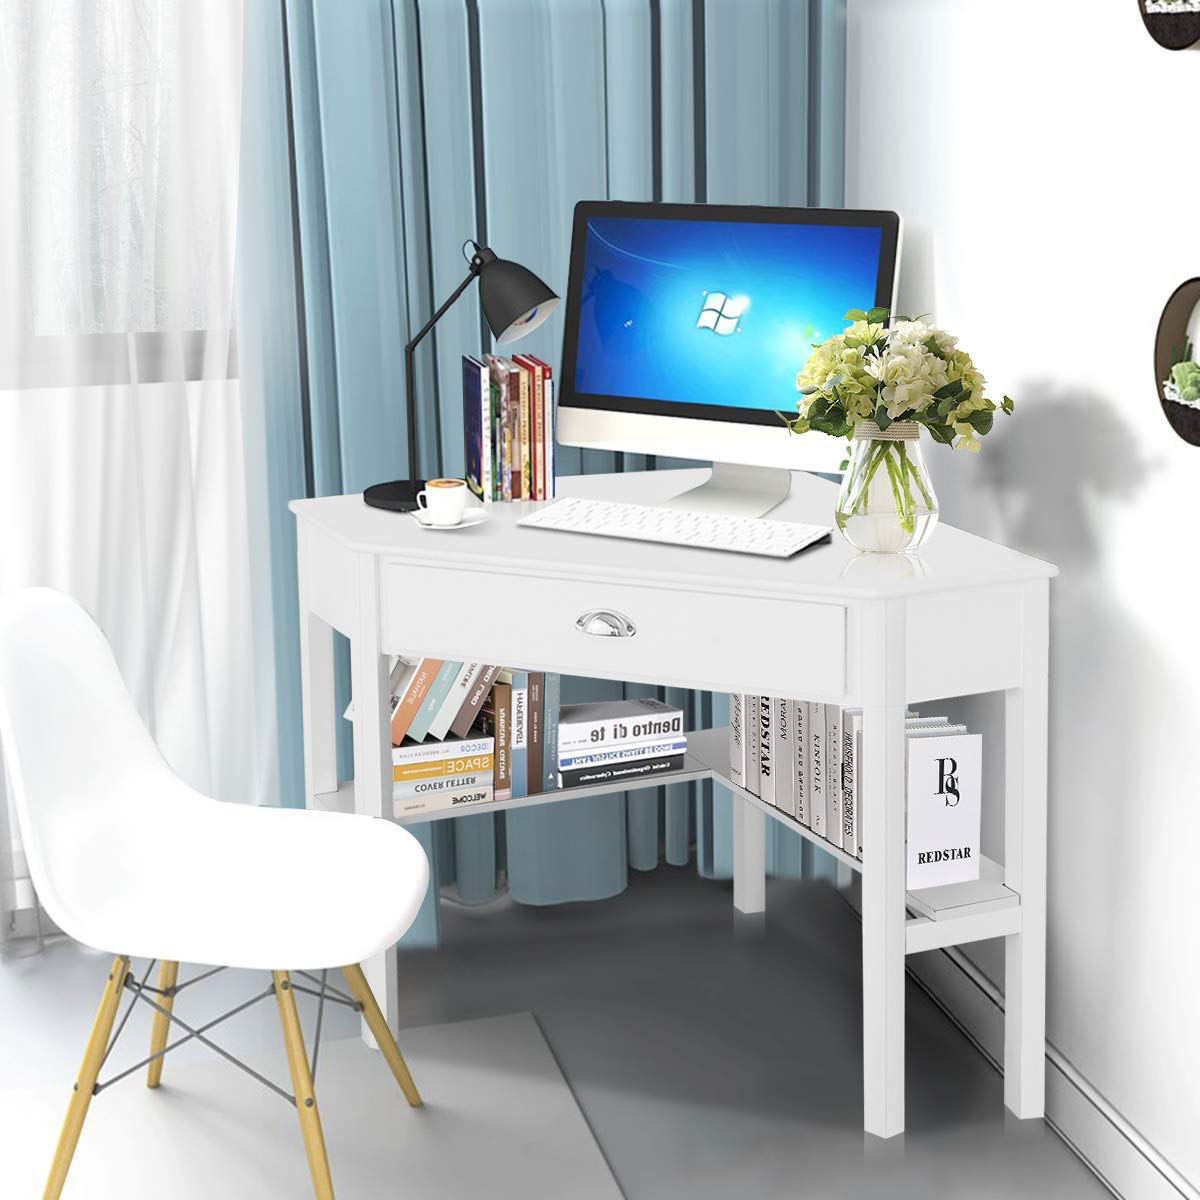 Tangkula Corner Desk, Corner Computer Desk, Wood Compact Home Office Desk, Laptop PC Table Writing Study Table, Workstation with Storage Drawer Shelves